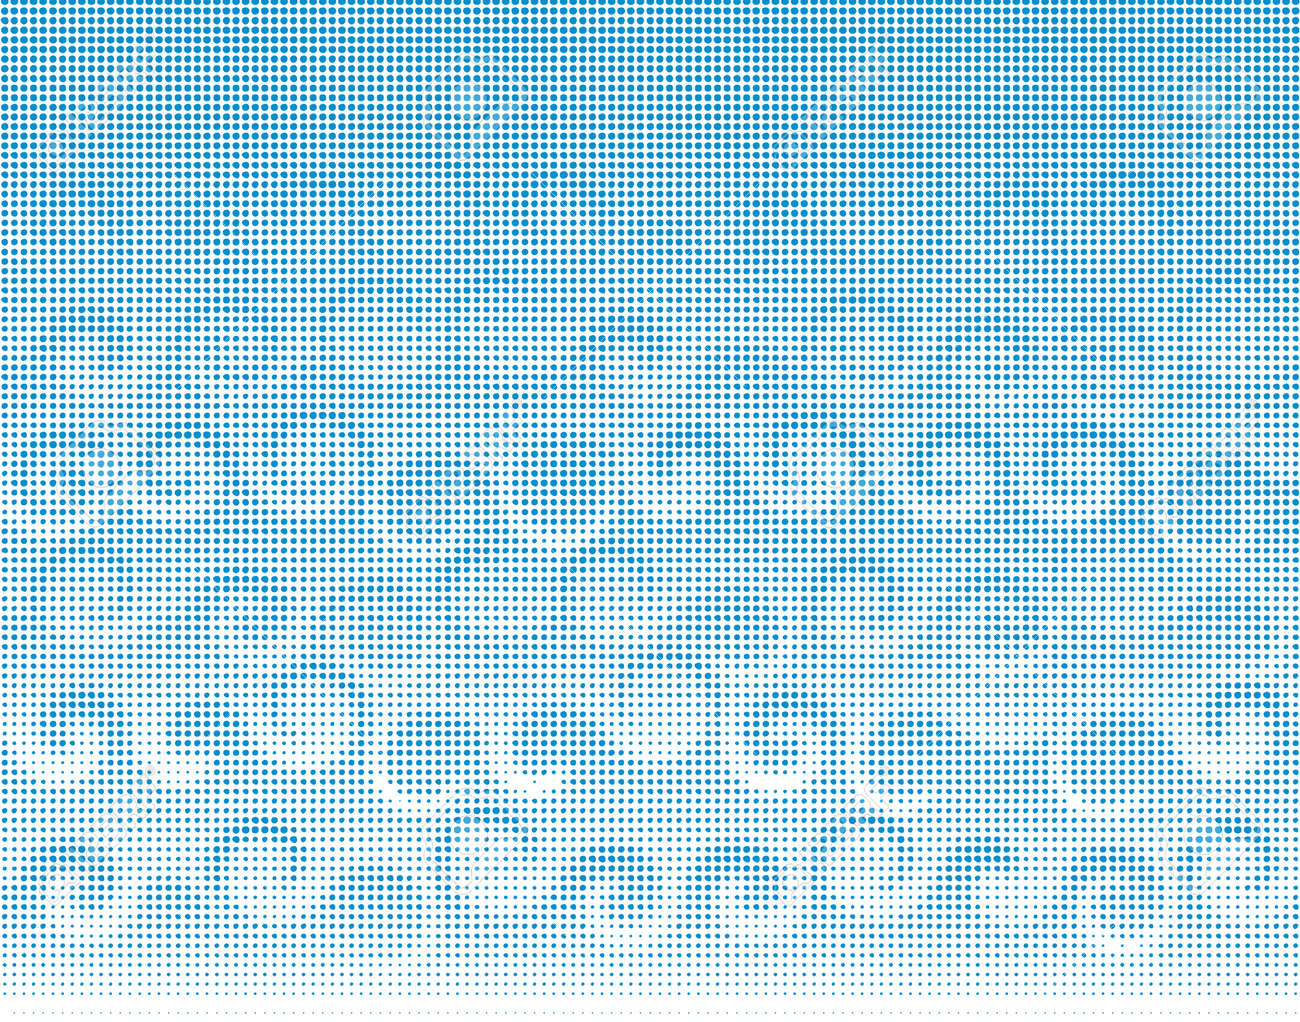 Abstract Vector Halftone Background Of Ocean Waves